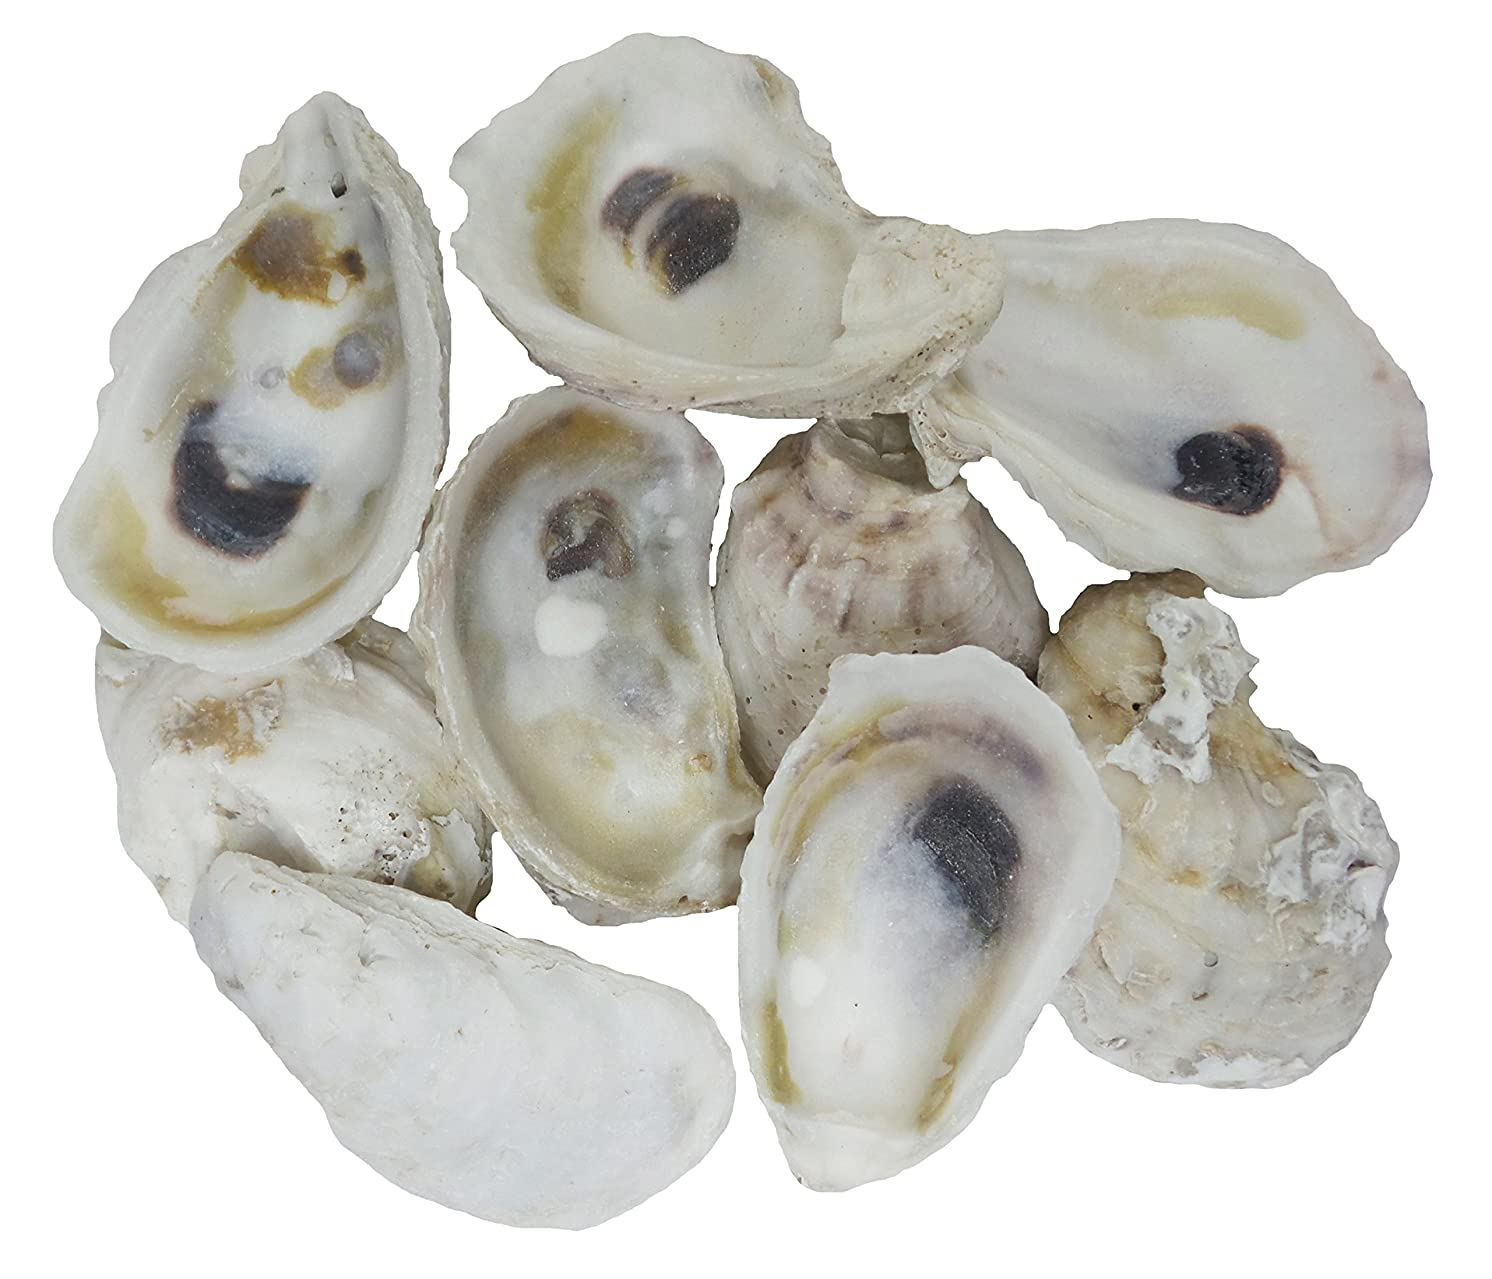 U.S. Shell 05114 Oyster Shells, 2 to 3 inches, 2